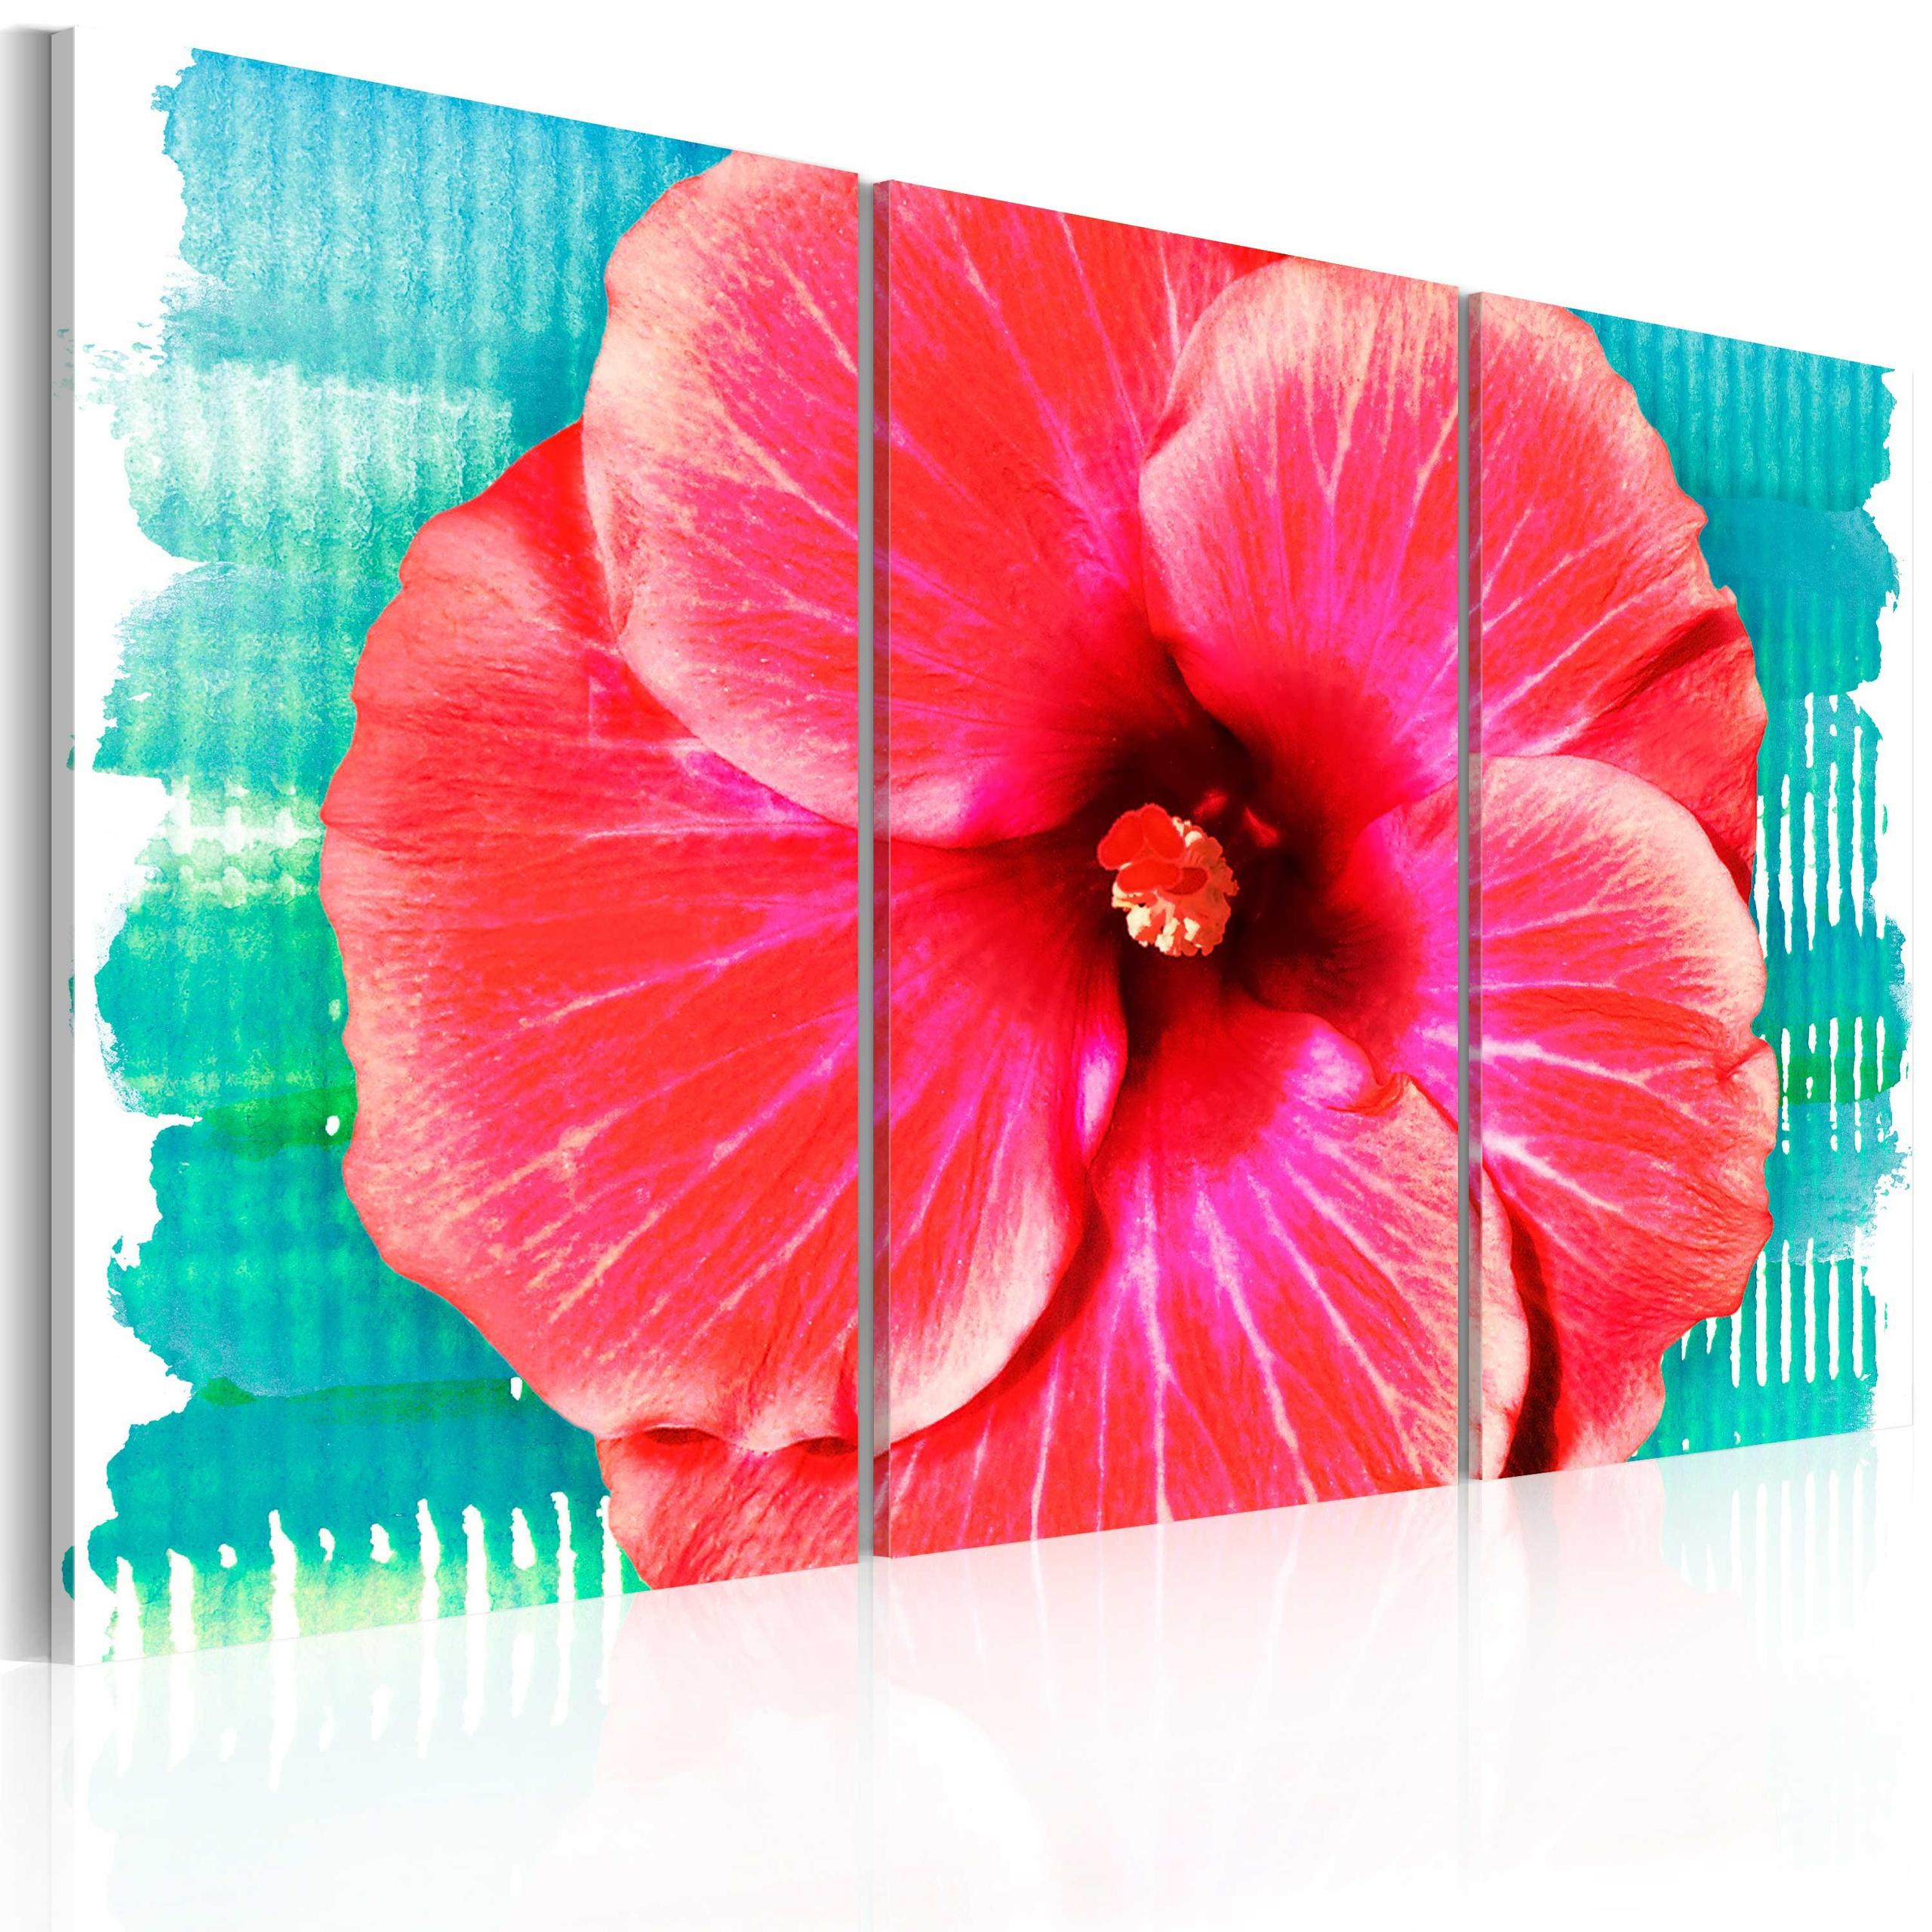 Quadro - Hawaiian Flower - Triptych 60X40Cm Erroi